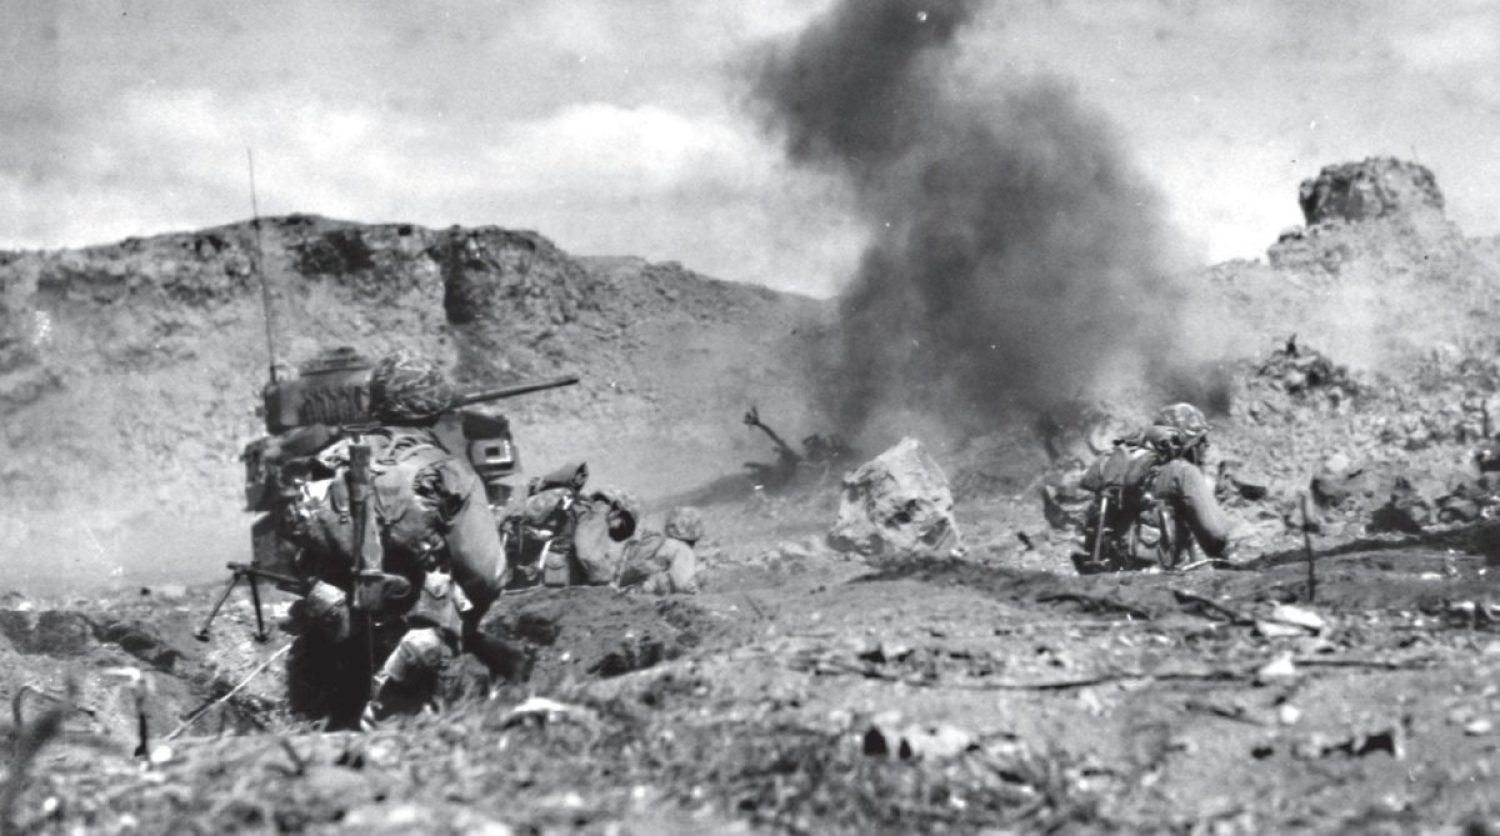 Marine infantry and tanks attack Japanese positions on rocky northern Iwo Jima during a direct frontal assault. The explosion seen is an enemy mortar shell. This advance gained 20 yards at a cost of 30 Marine casualties. U.S. MARINE CORPS HISTORICAL CENTER